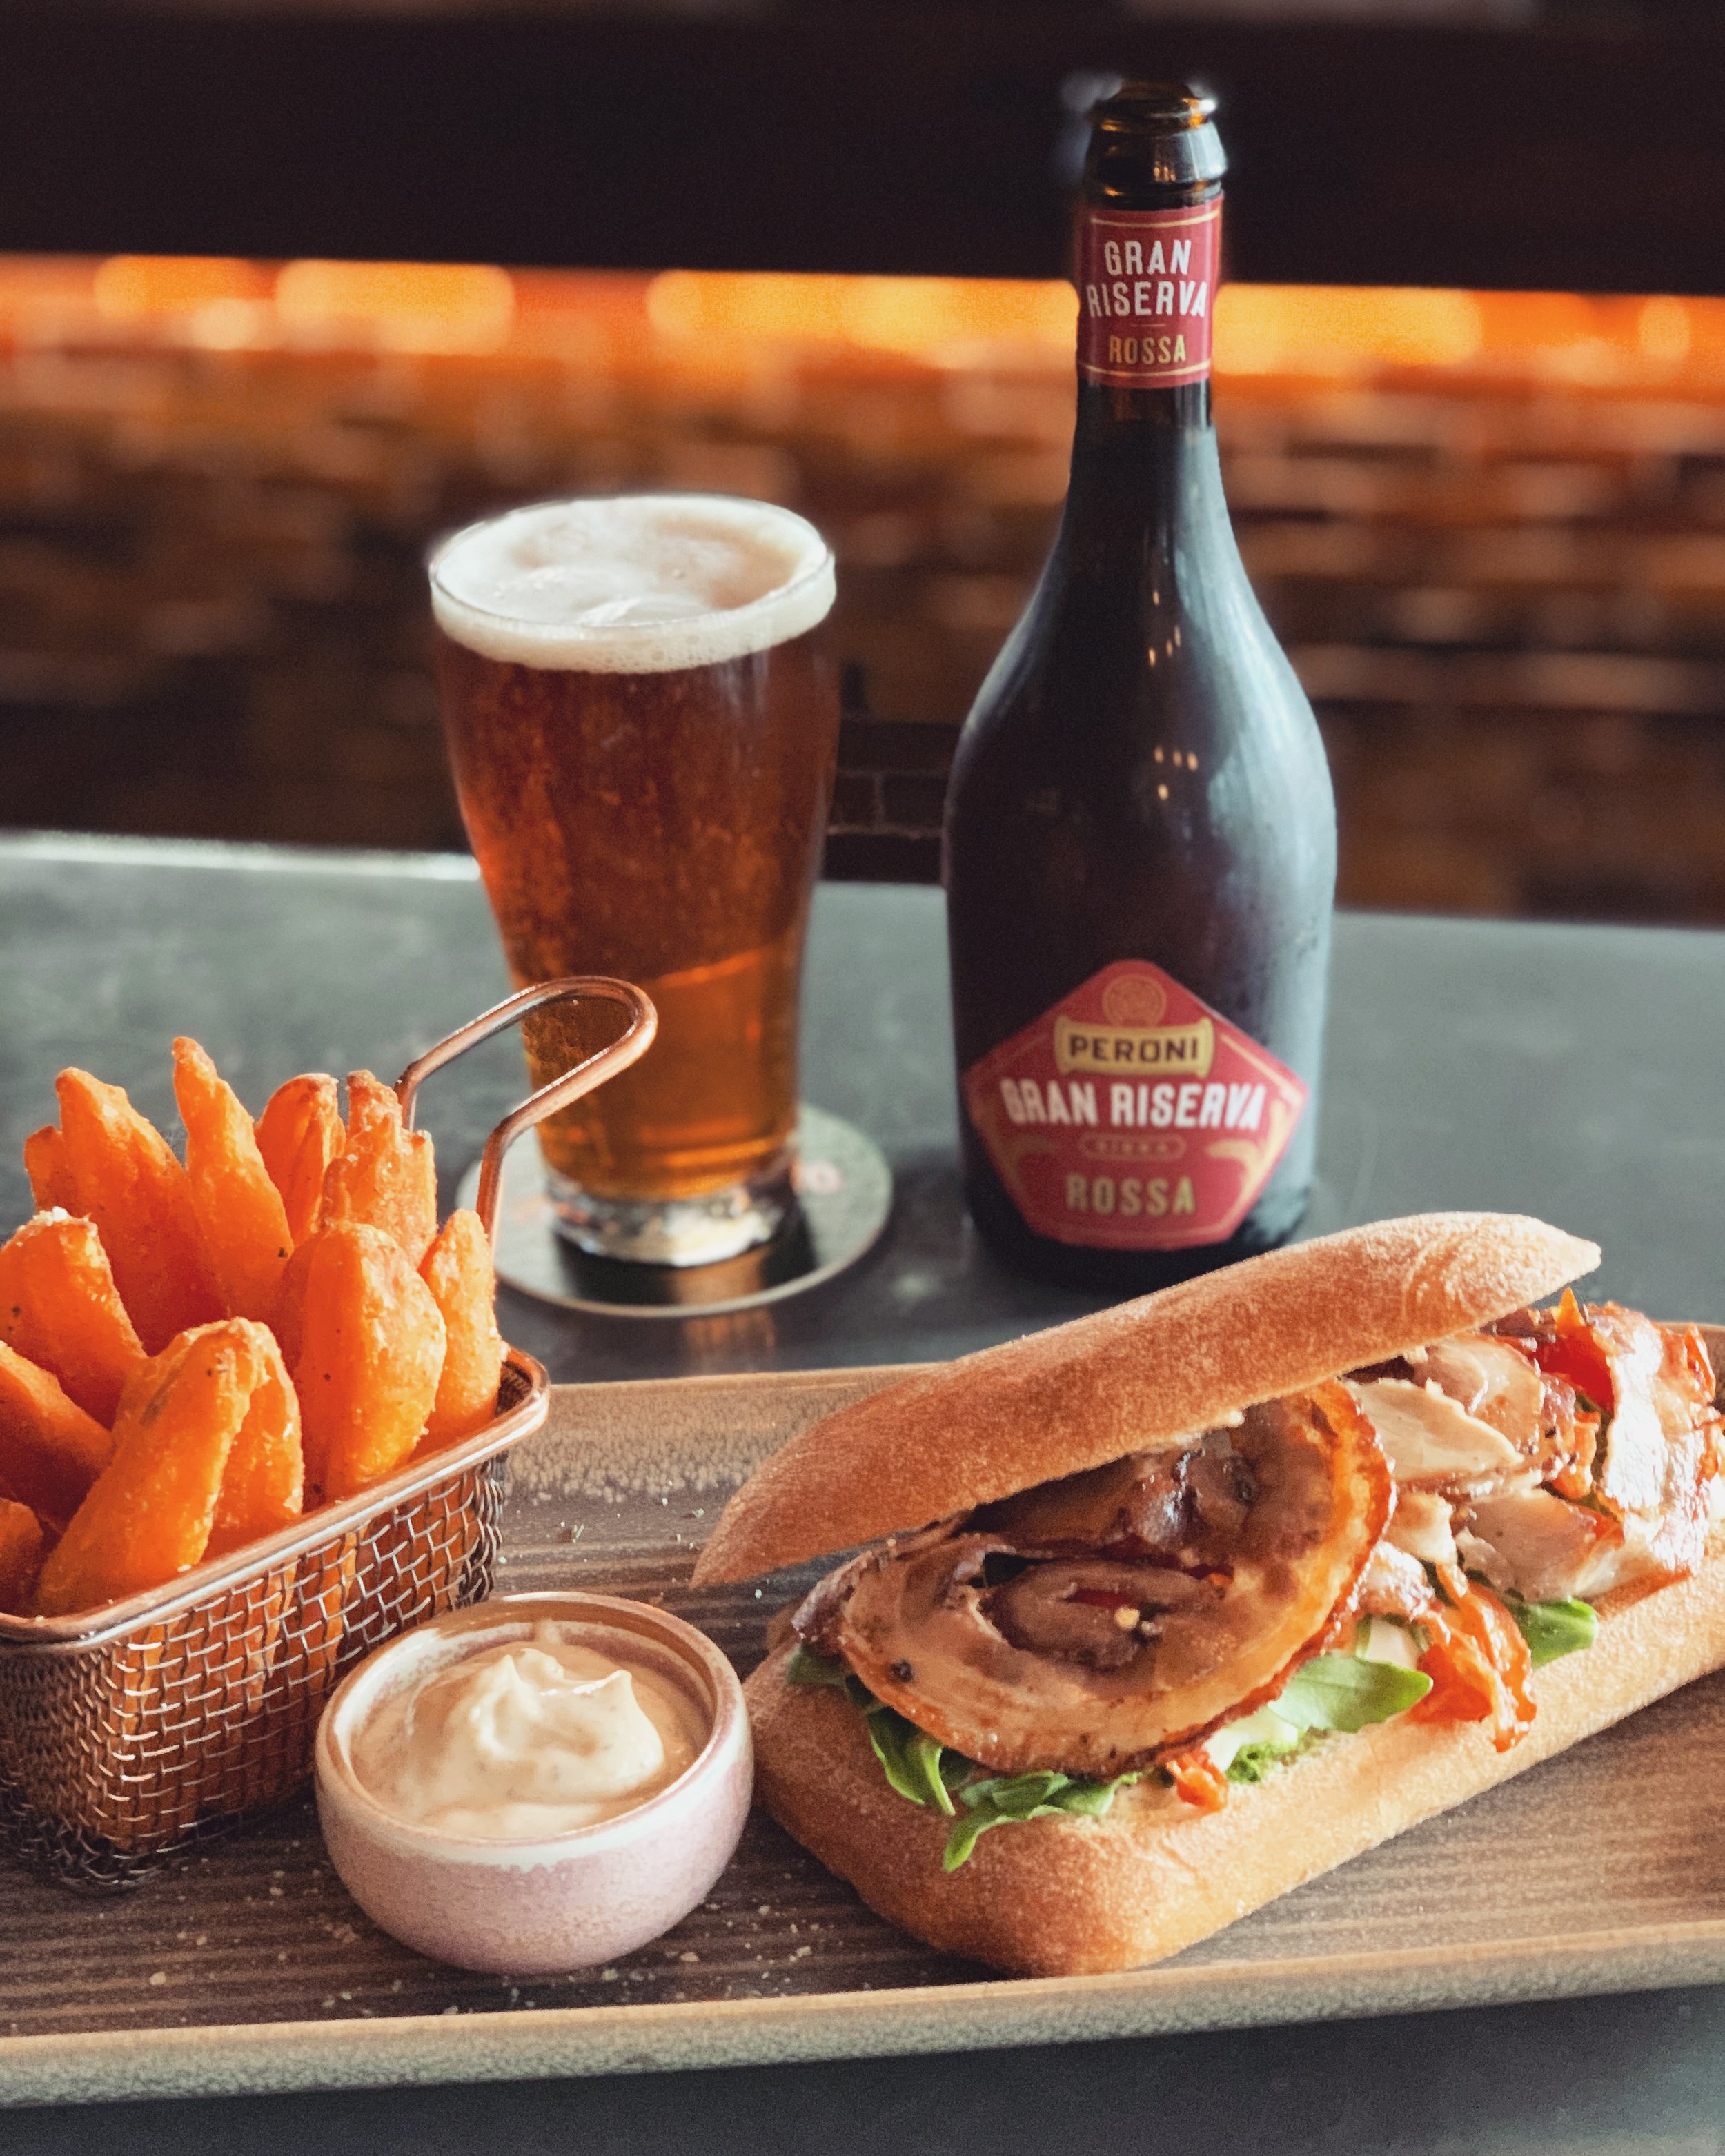 14-20 August - If you're looking for the ultimate lunch fix, then look no further! Delicious slow roasted, thinly sliced porchetta, taleggio cheese and semi dried tomato on a stone baked white ciabatta, with a side of sweet potato fries and truffle aioli..We have NO DOUBT this lunch roll will make your day a little better! Lunch only!.Perfectly quenched by a 500ml Peroni Gran Riserva Rossa 👌🏻🍺